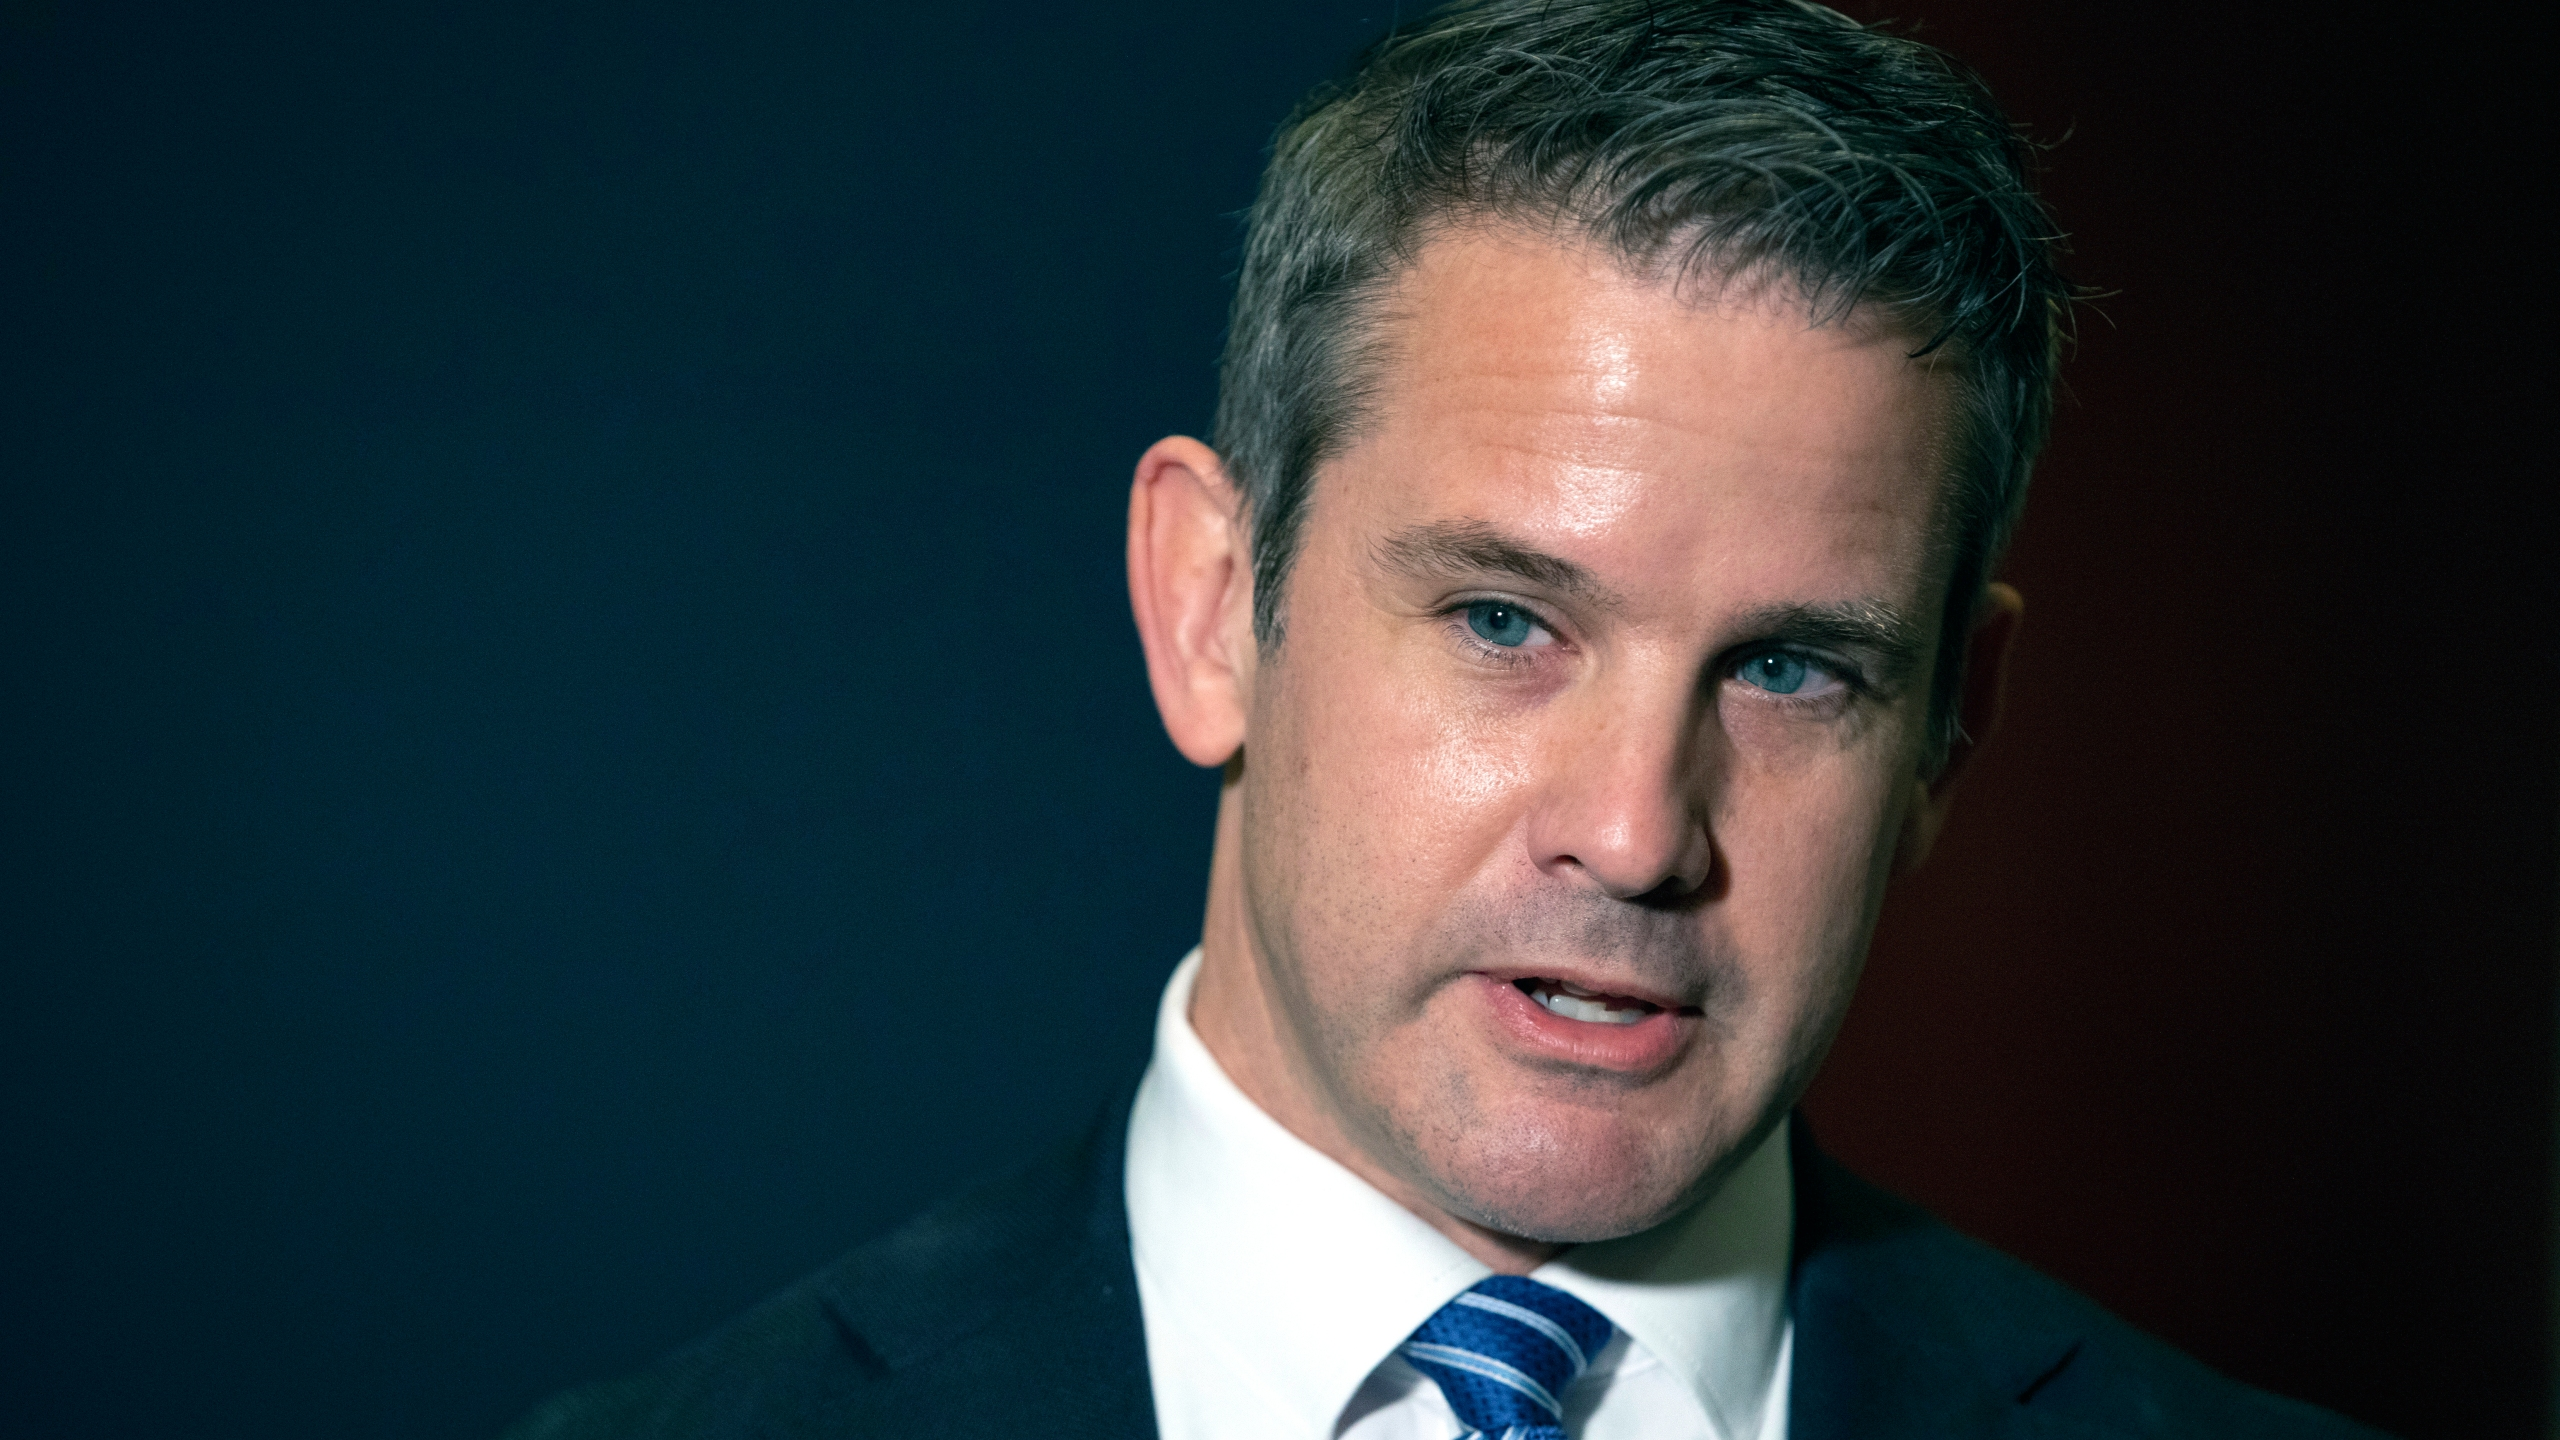 """FILE - In this May 12, 2021 file photo, Rep. Adam Kinzinger, R-Ill., speaks to the media at the Capitol in Washington. House Speaker Nancy Pelosi said Sunday, July 25 she intends to name Kinzinger to a congressional committee investigating the violent Jan. 6 Capitol insurrection, pledging that the panel will """"find the truth"""" even as the GOP threatens to boycott the effort. (AP Photo/Amanda Andrade-Rhoades, File)"""